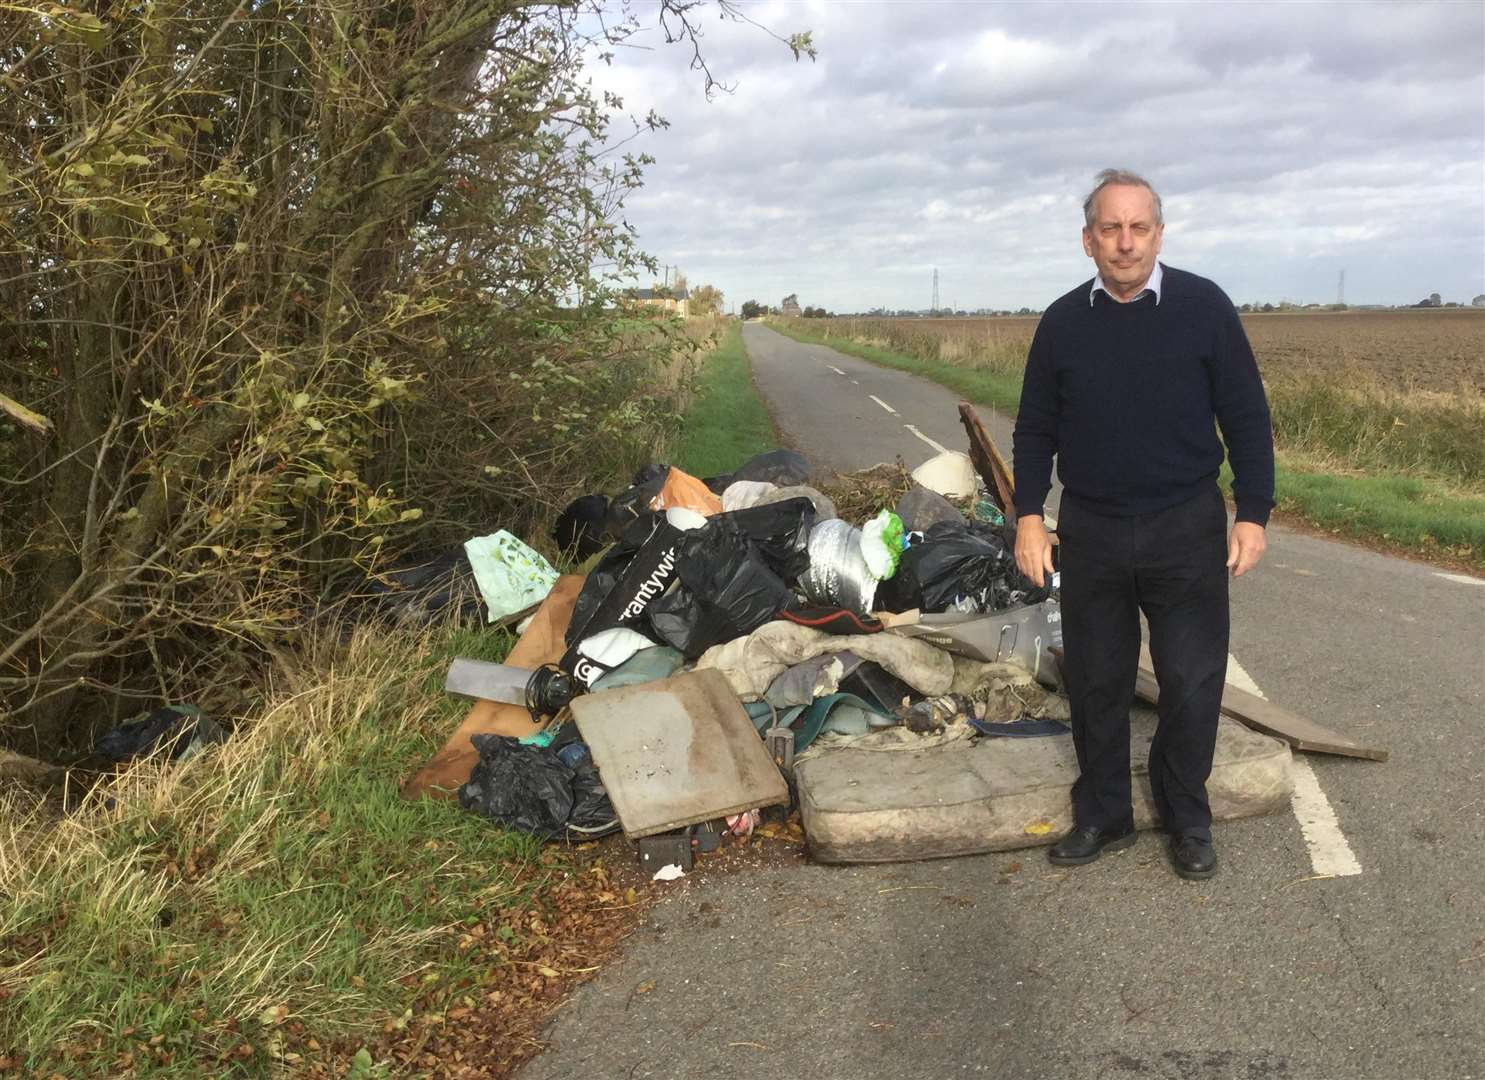 'TERRIBLE' FLYTIPPING: Coun Anthony Casson comes across household waste dumped on Delgate Bank, Weston Hills. Photo supplied.